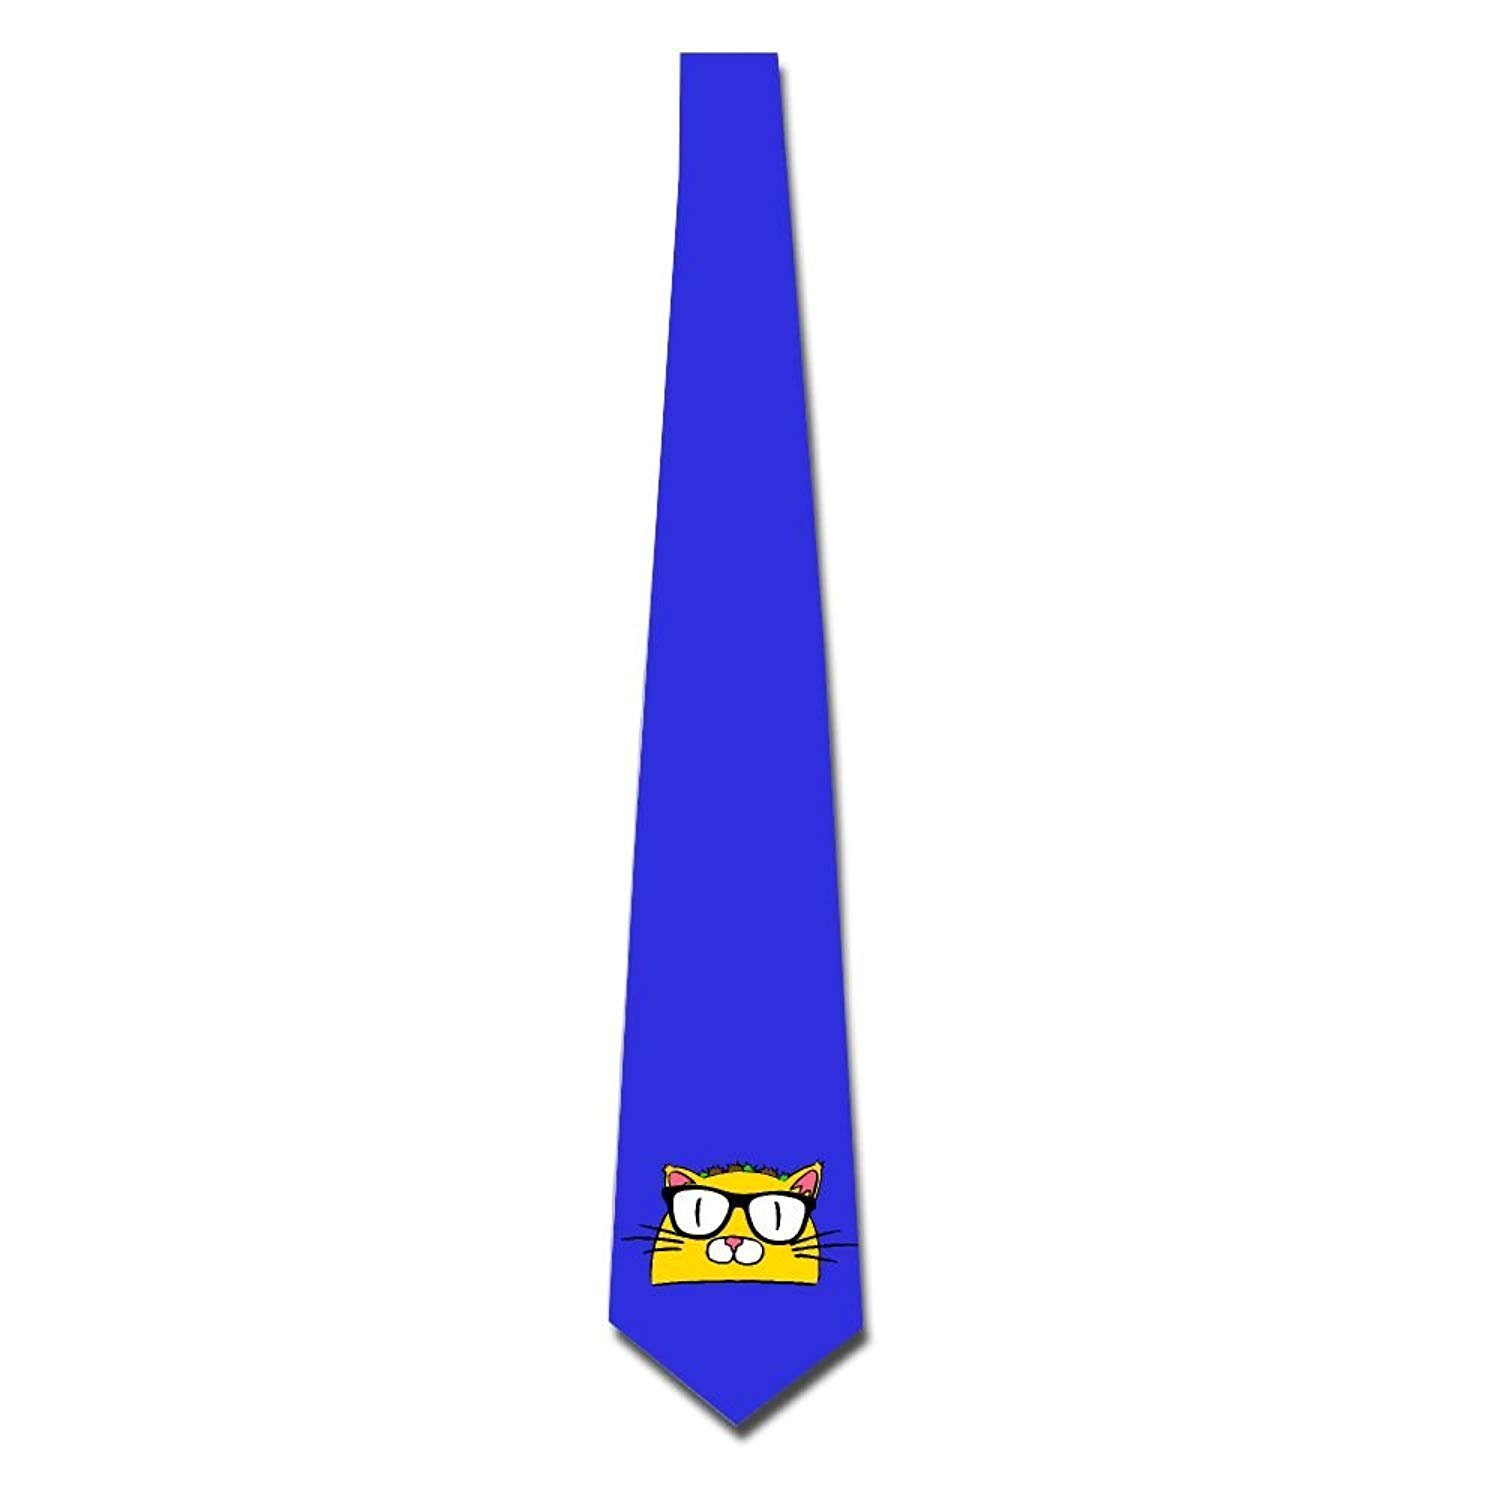 Men's Necktie Polyester Neckwear Silk Neckcloth Cat With Glasses Party Accessory